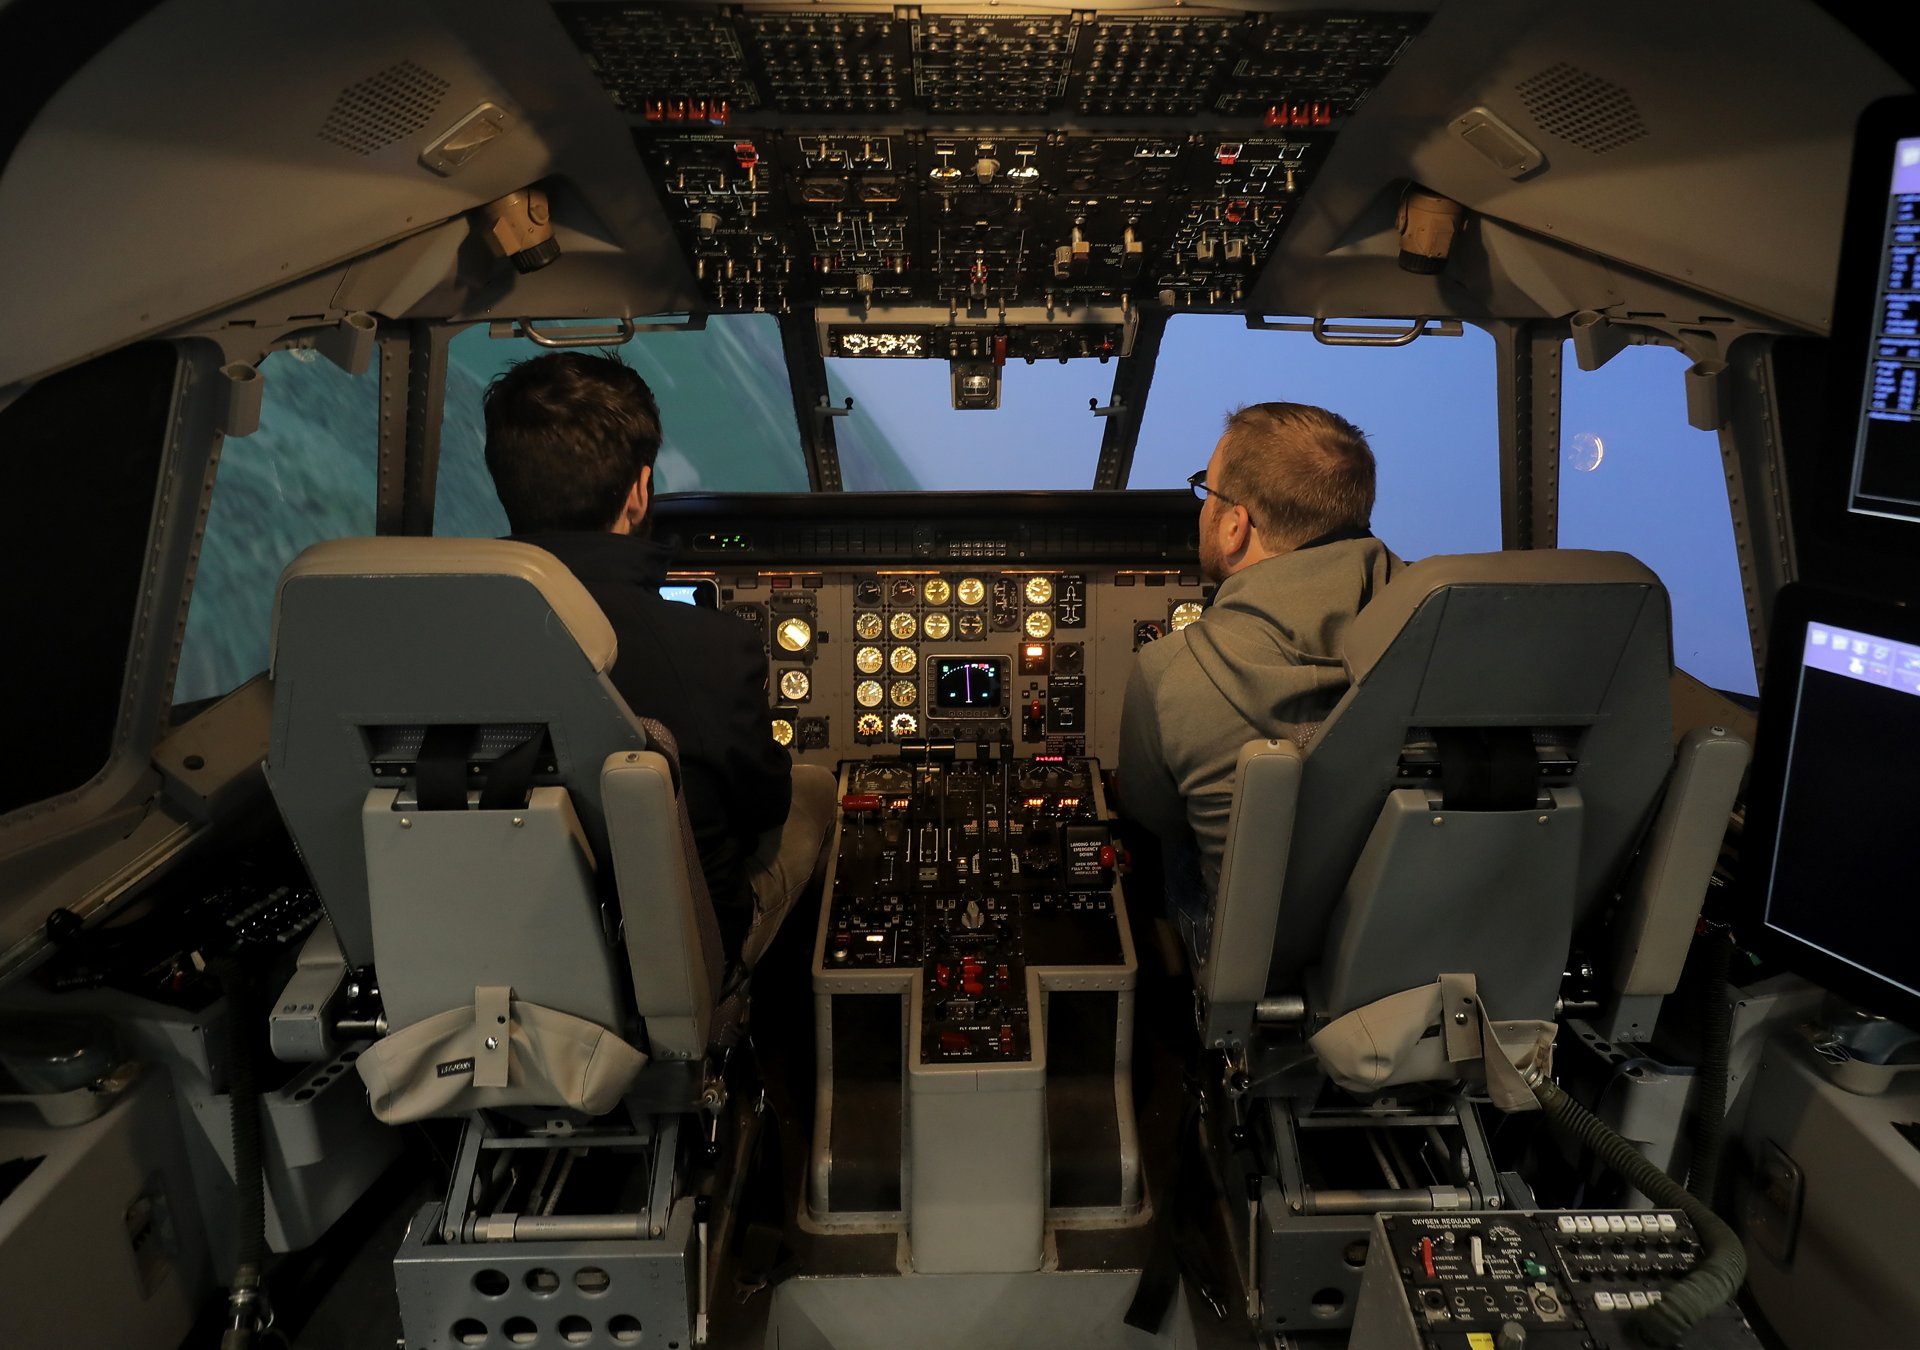 The full flight simulators at the Airbus International Training Centre for military aircraft are disinfected and cleaned following each session